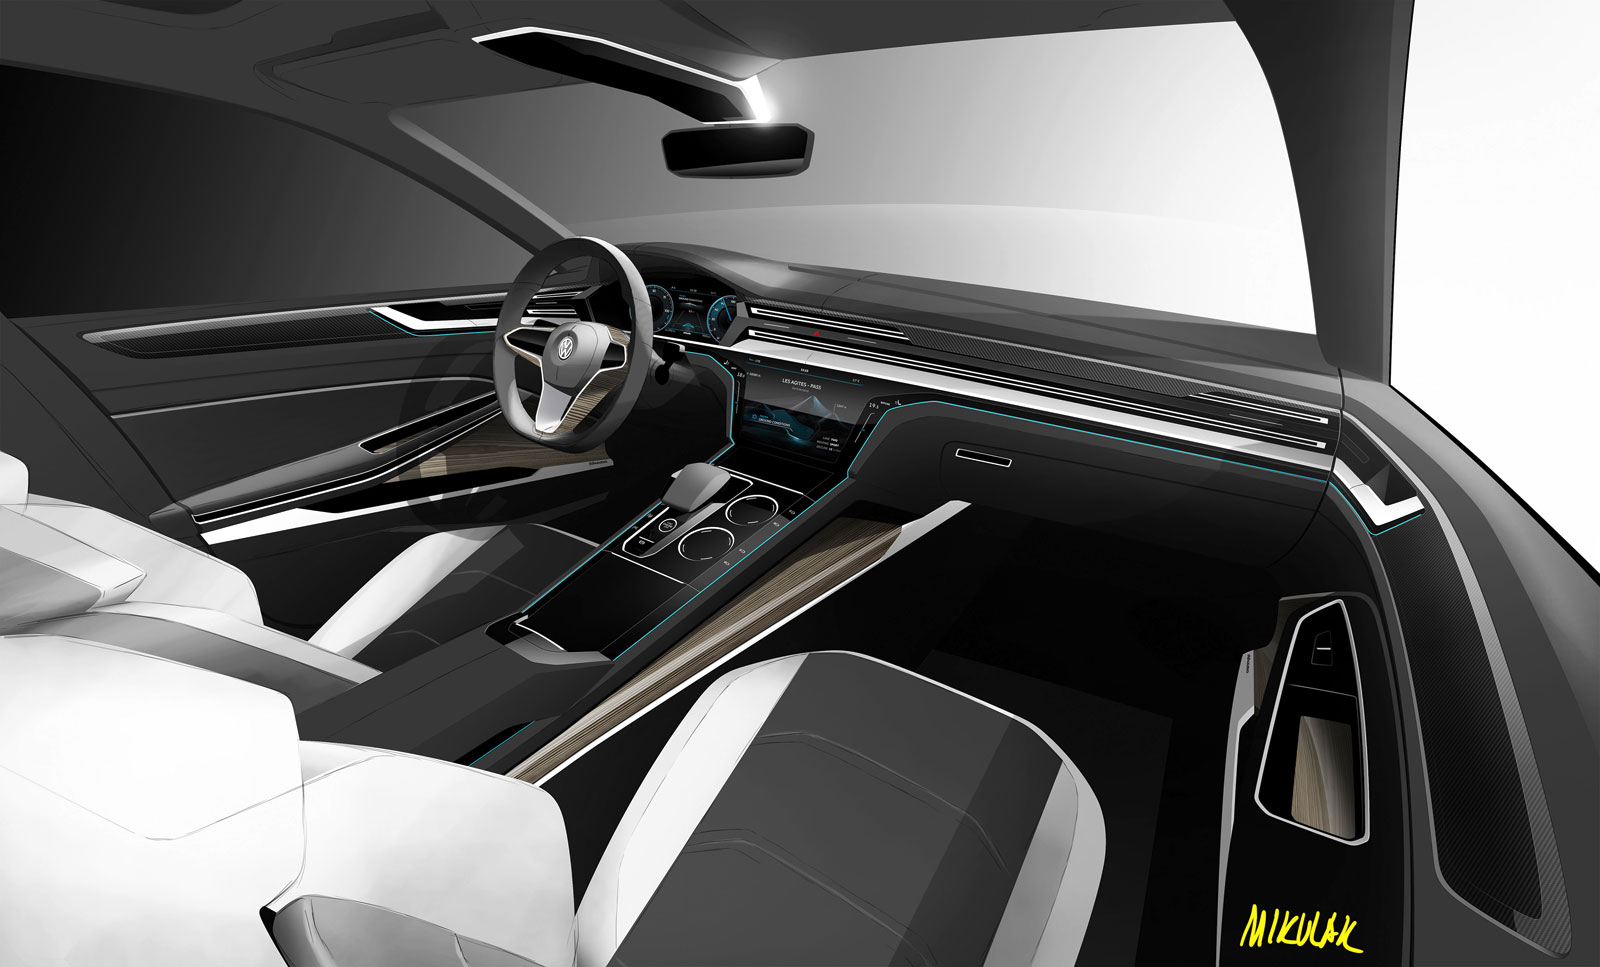 Vw sport coupe concept gte interior design sketch car - Car interior design ...